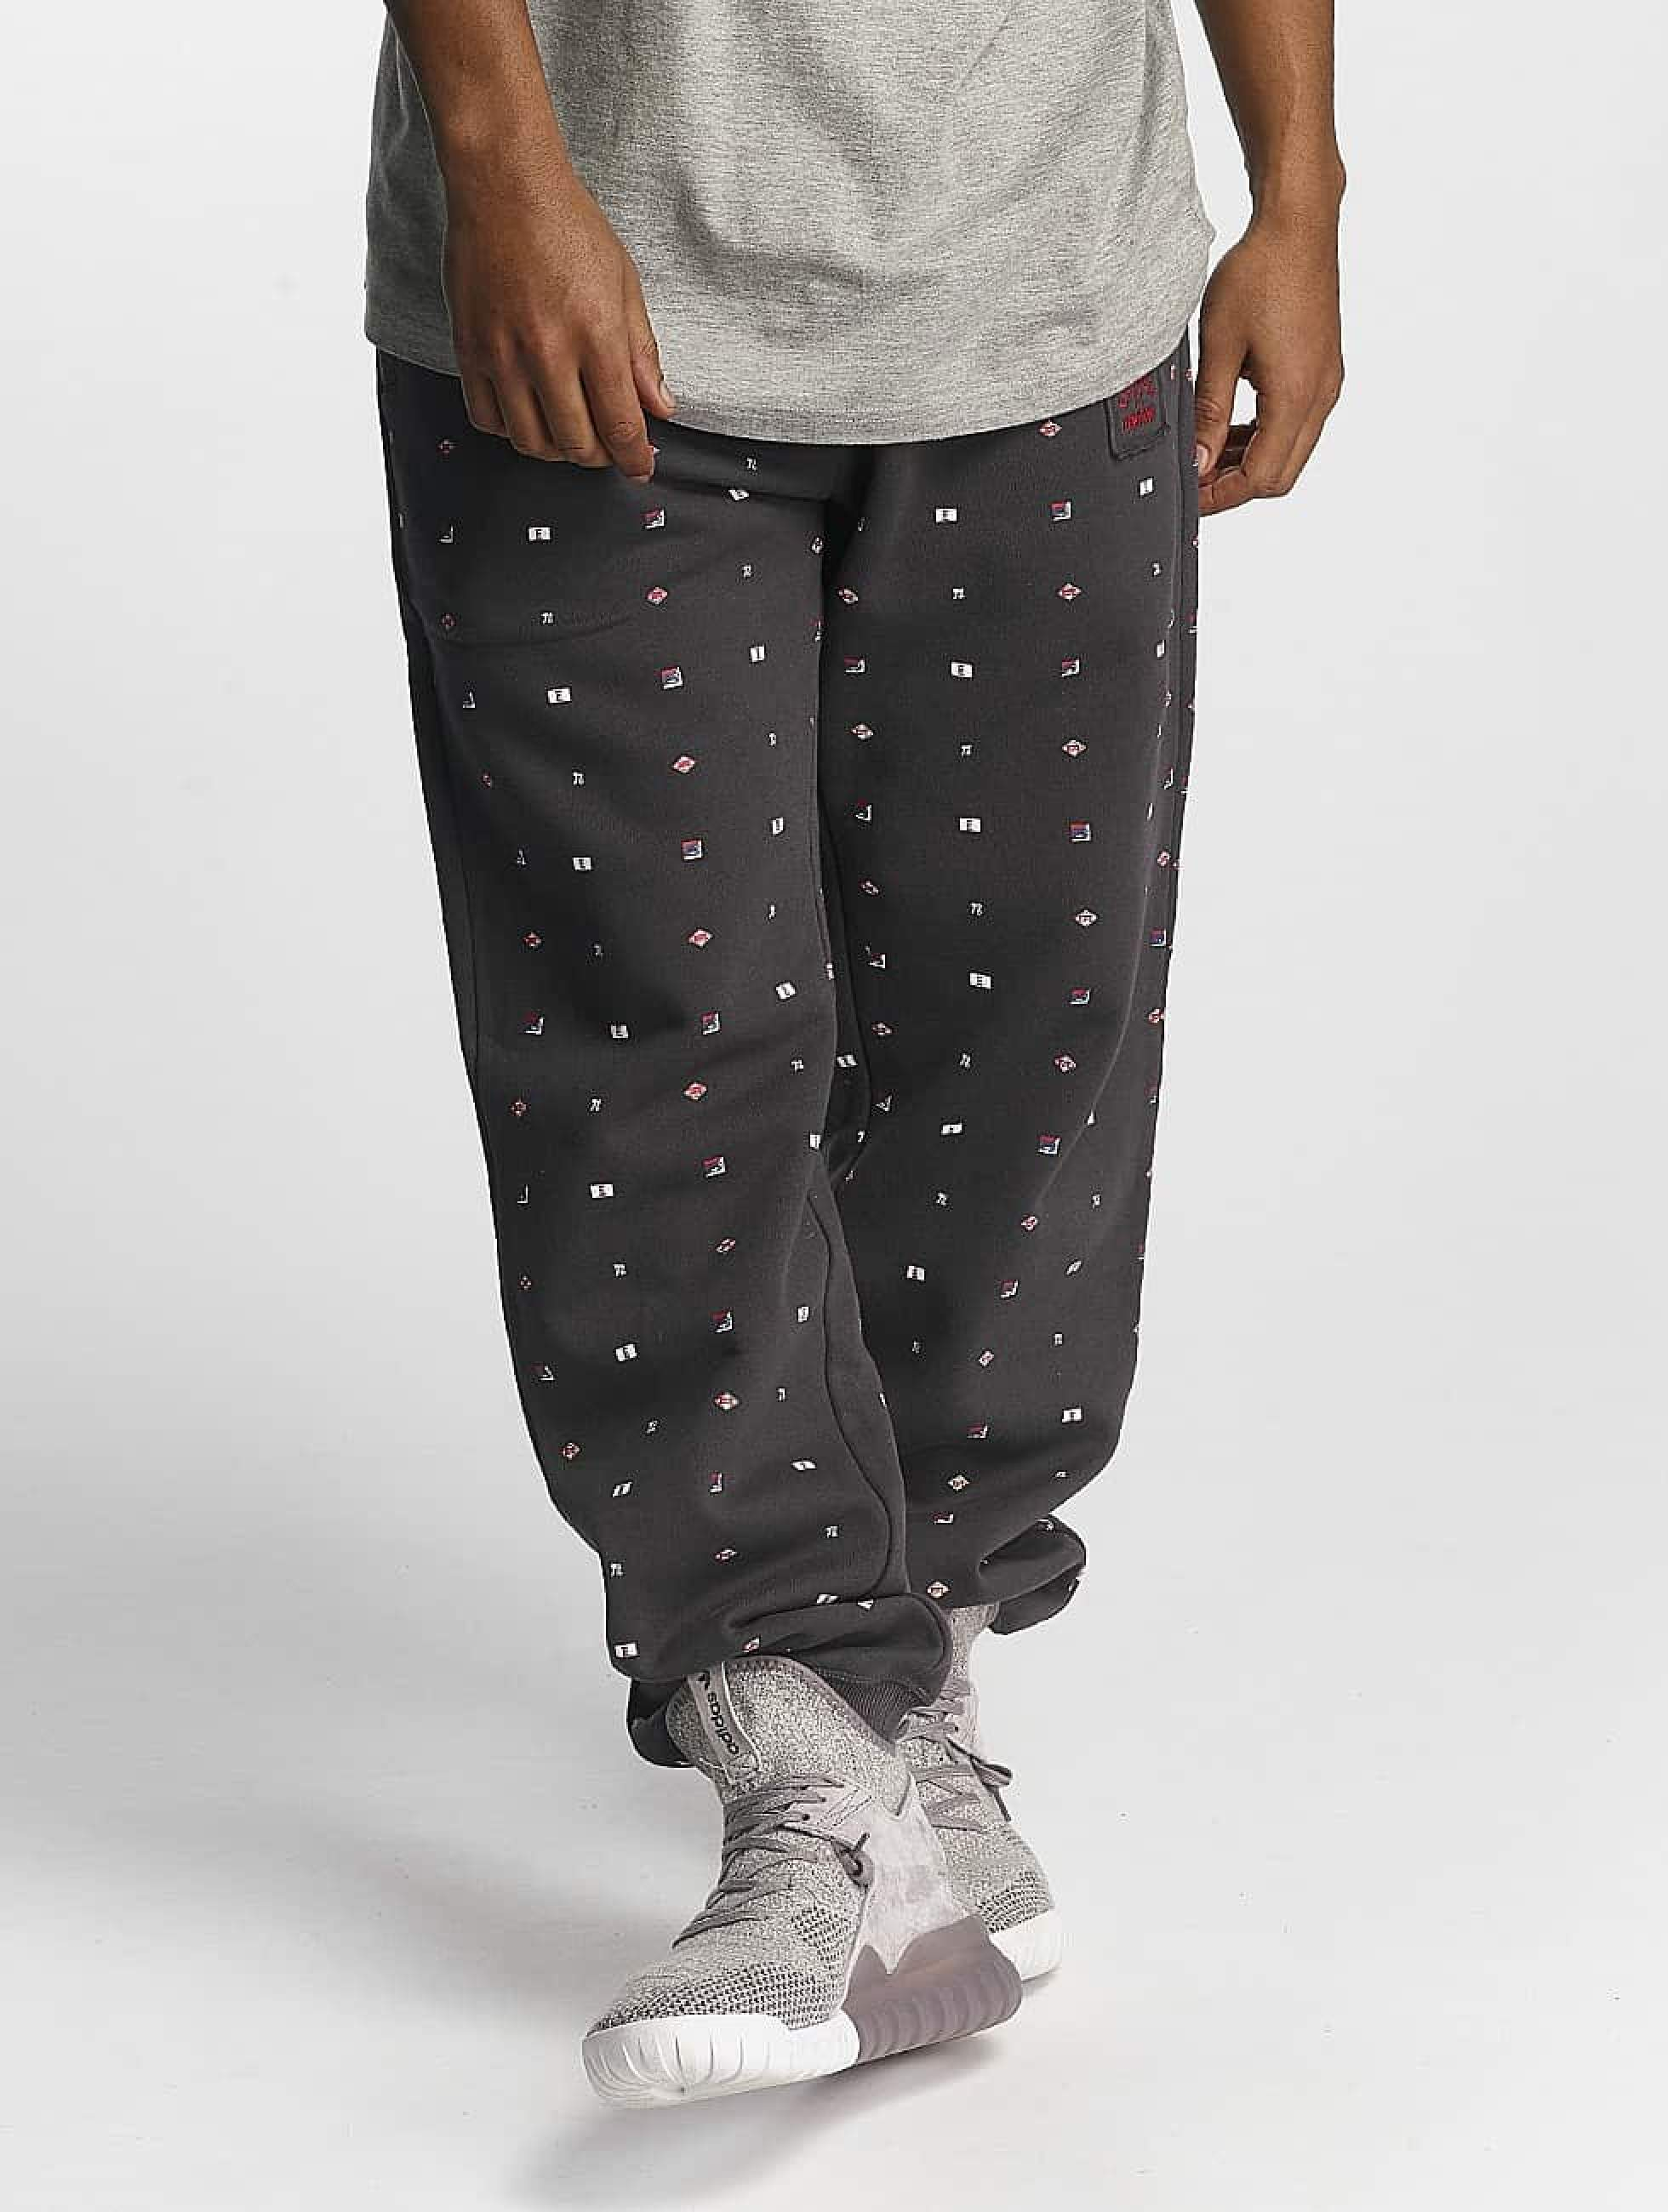 Ecko Unltd. / Sweat Pant CapeVidal in grey 3XL